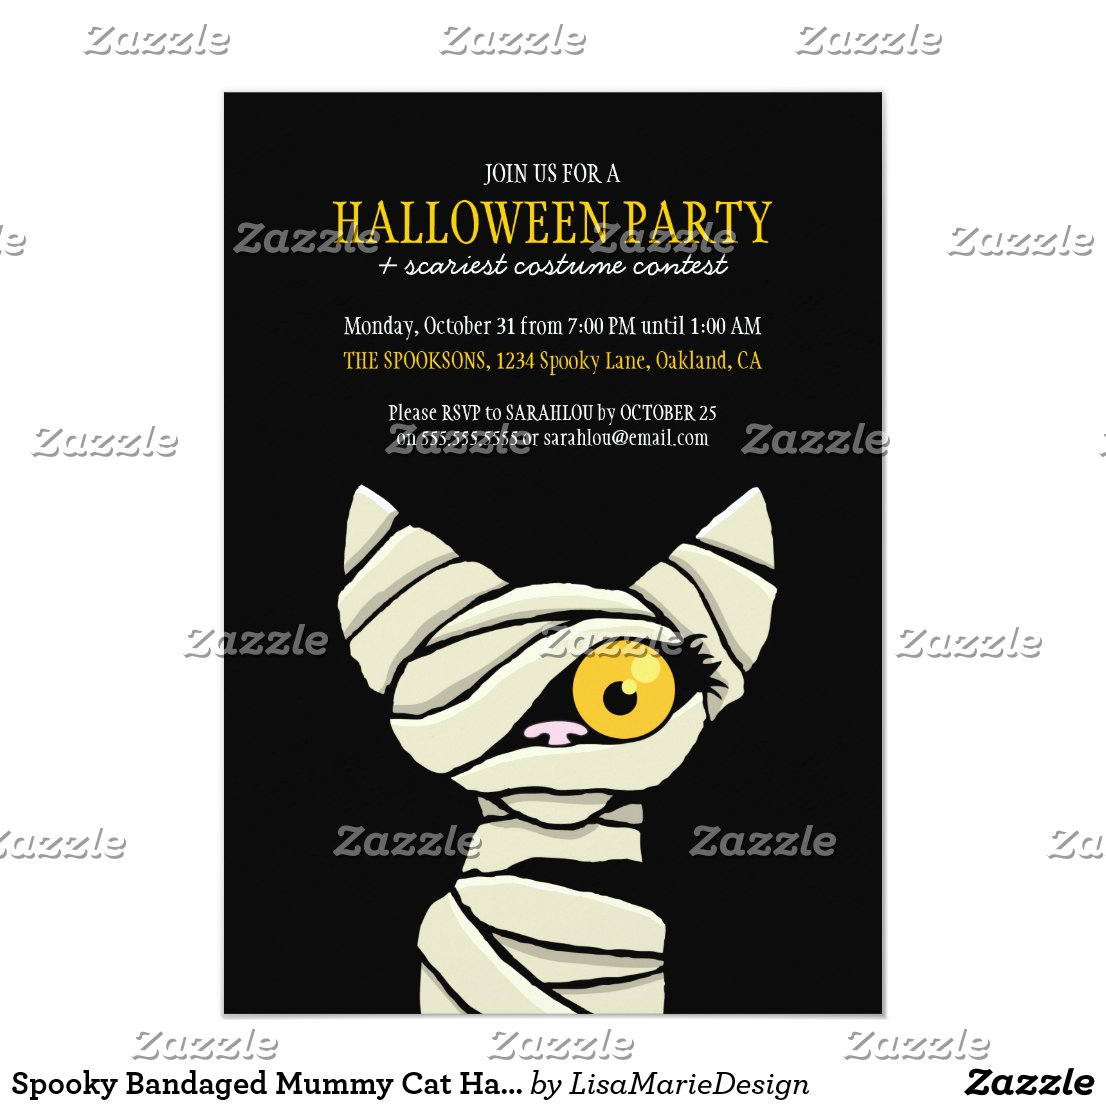 Spooky Bandaged Mummy Cat Halloween Party